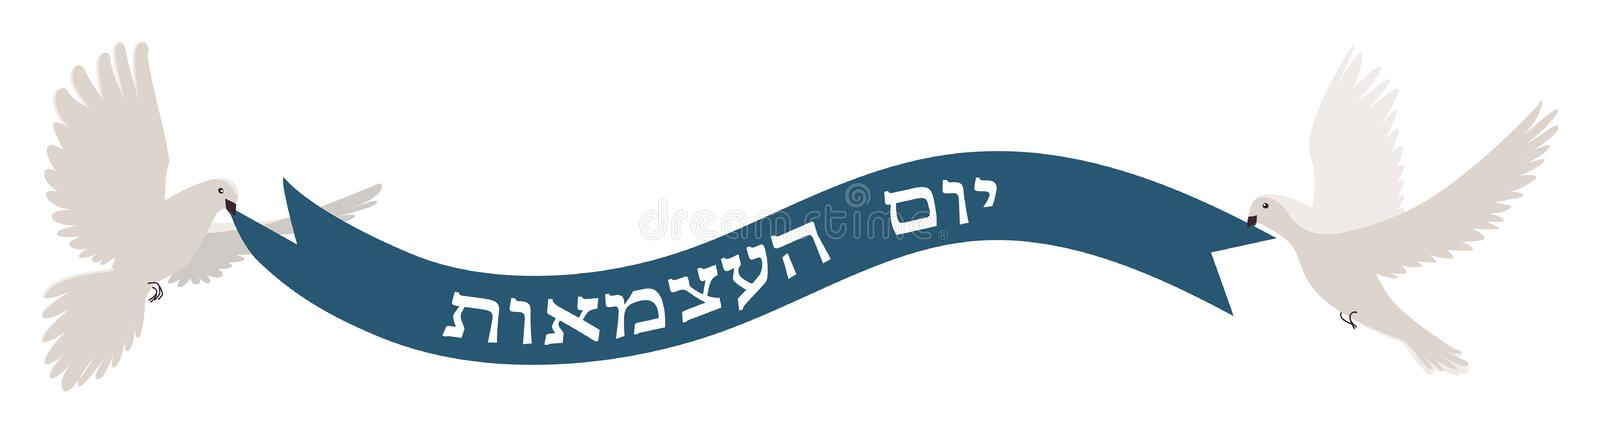 Israel Independence banner. Israel Independence, Yom Haatzmaut. Israeli National holiday horizontal banner with hebrew text and pigeons stock illustration